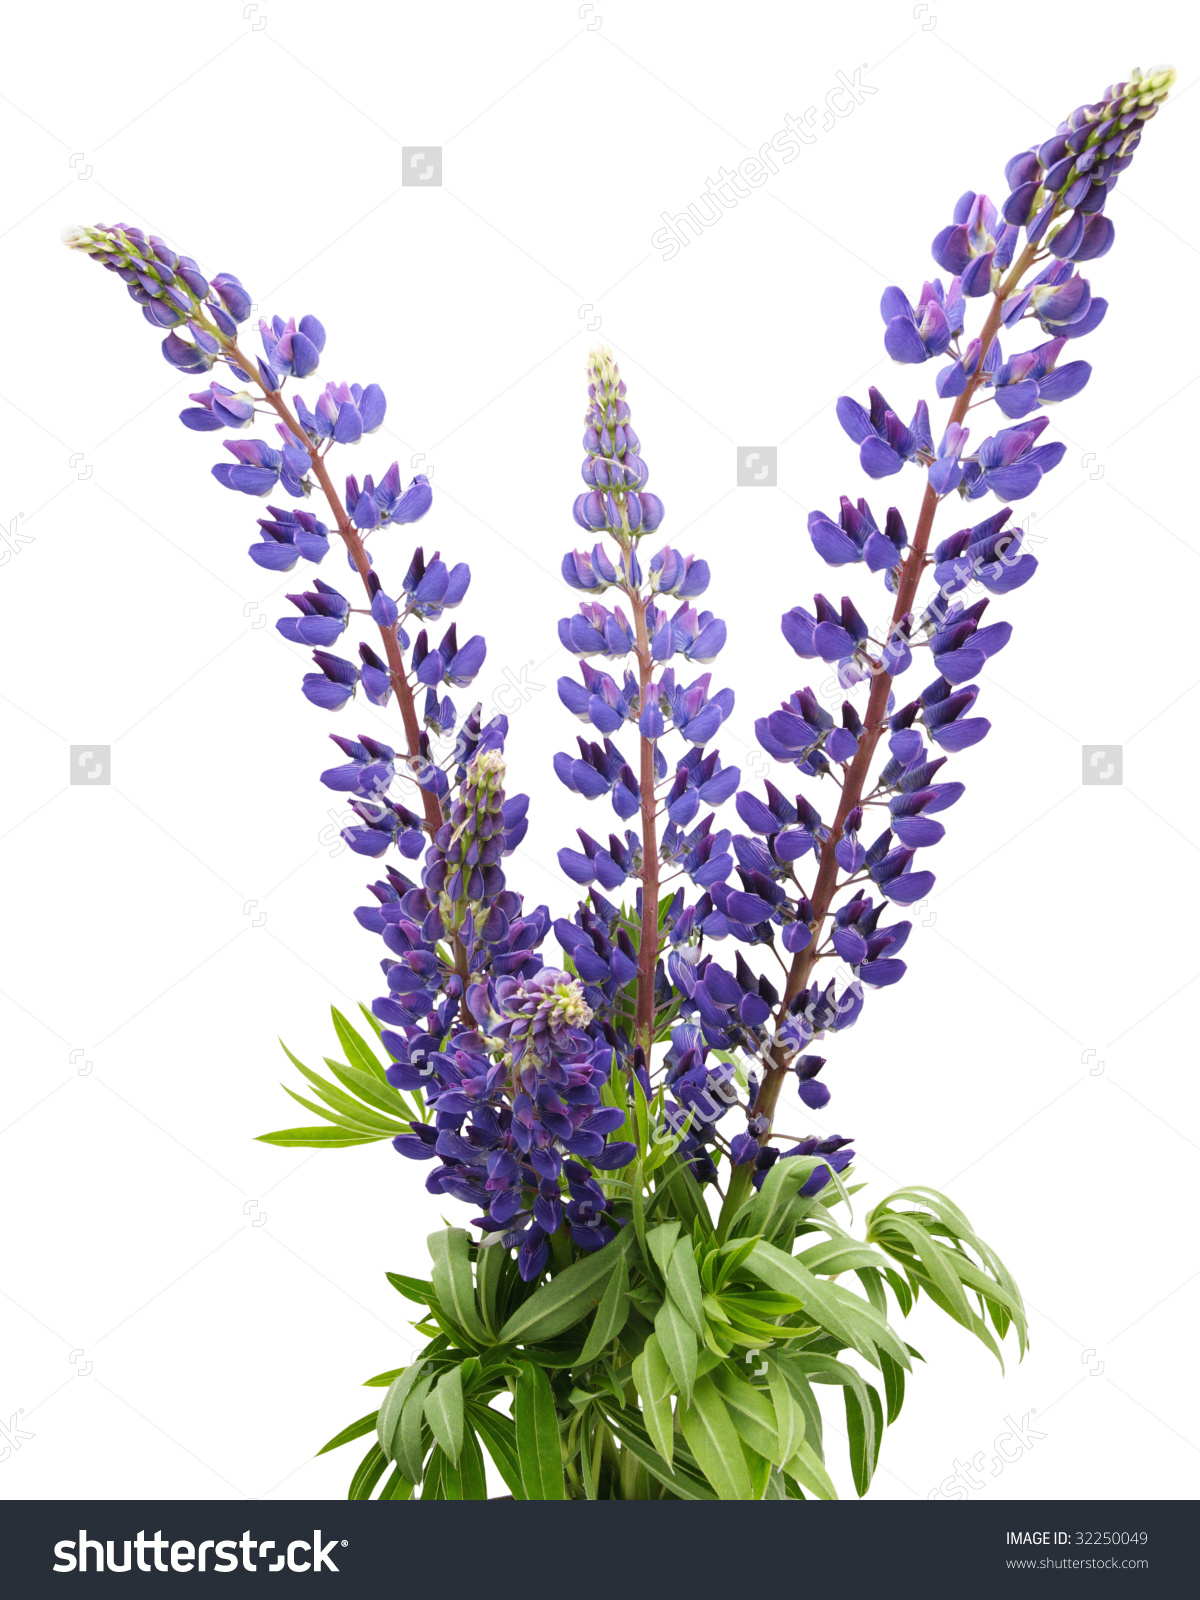 lupines clipart clipground